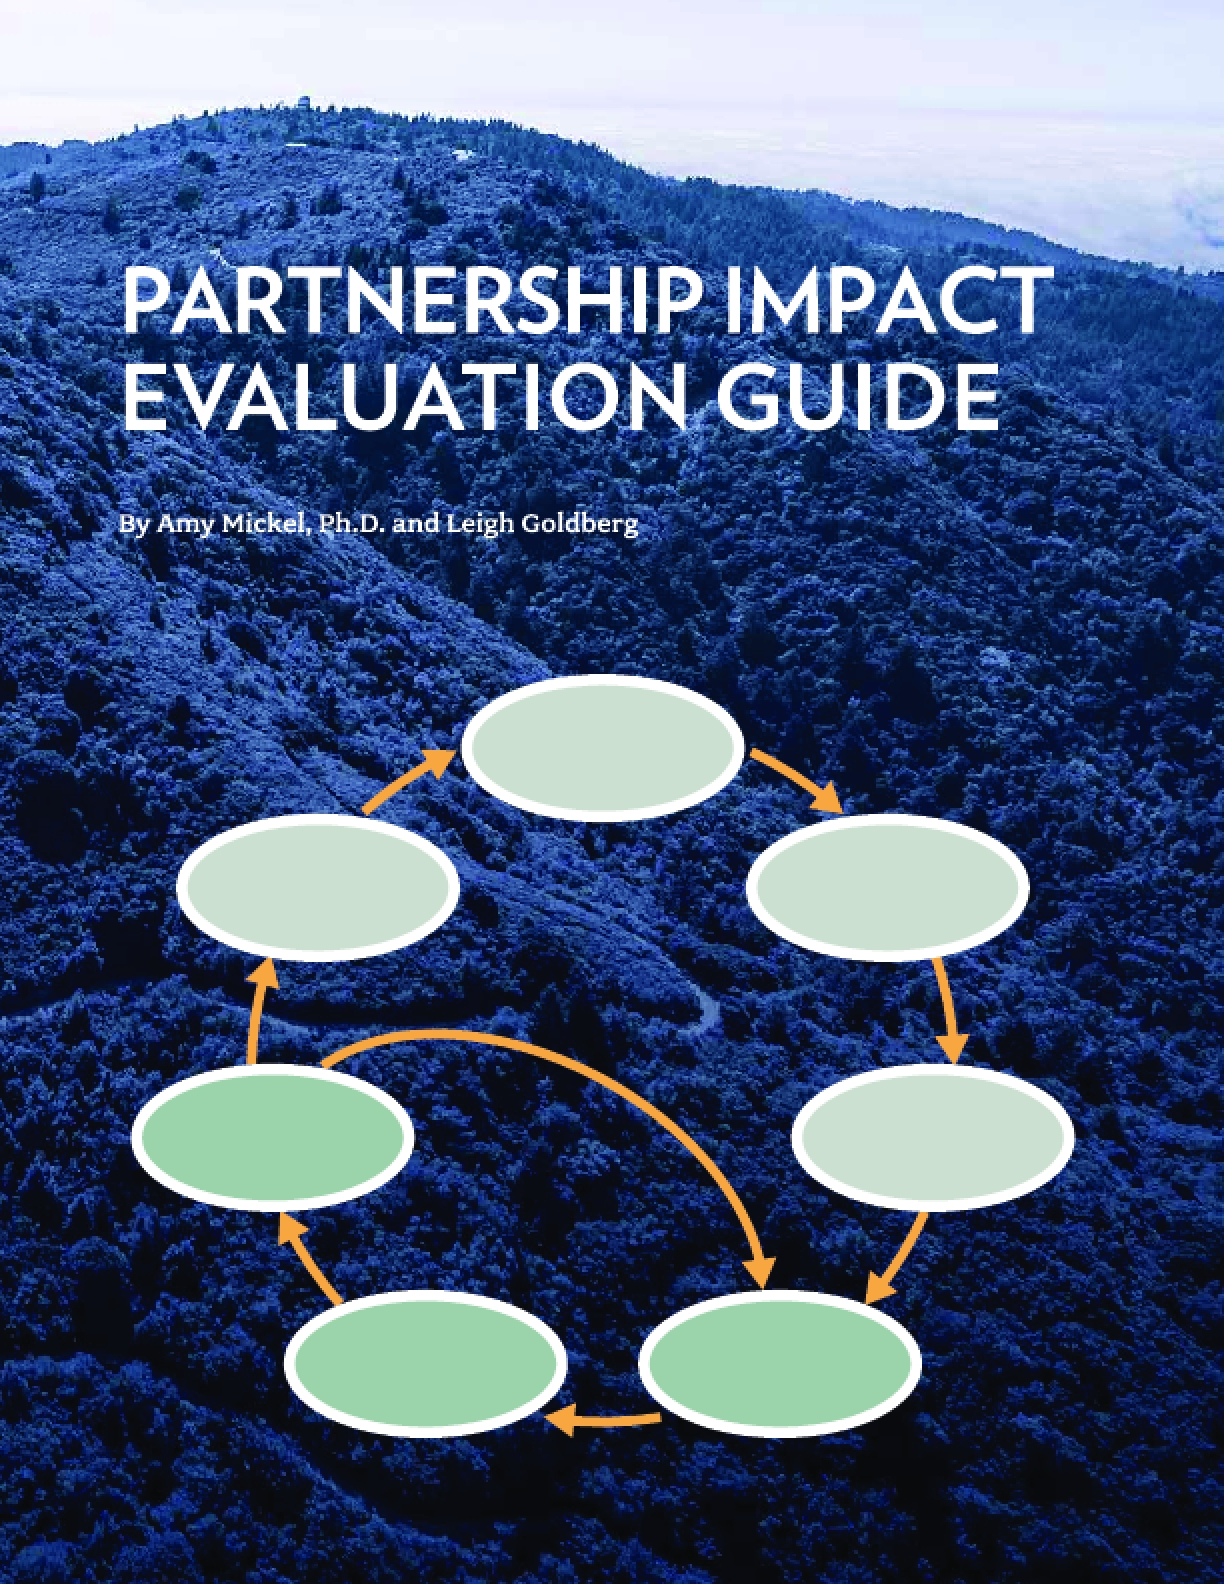 Partnership Impact Evaluation Guide